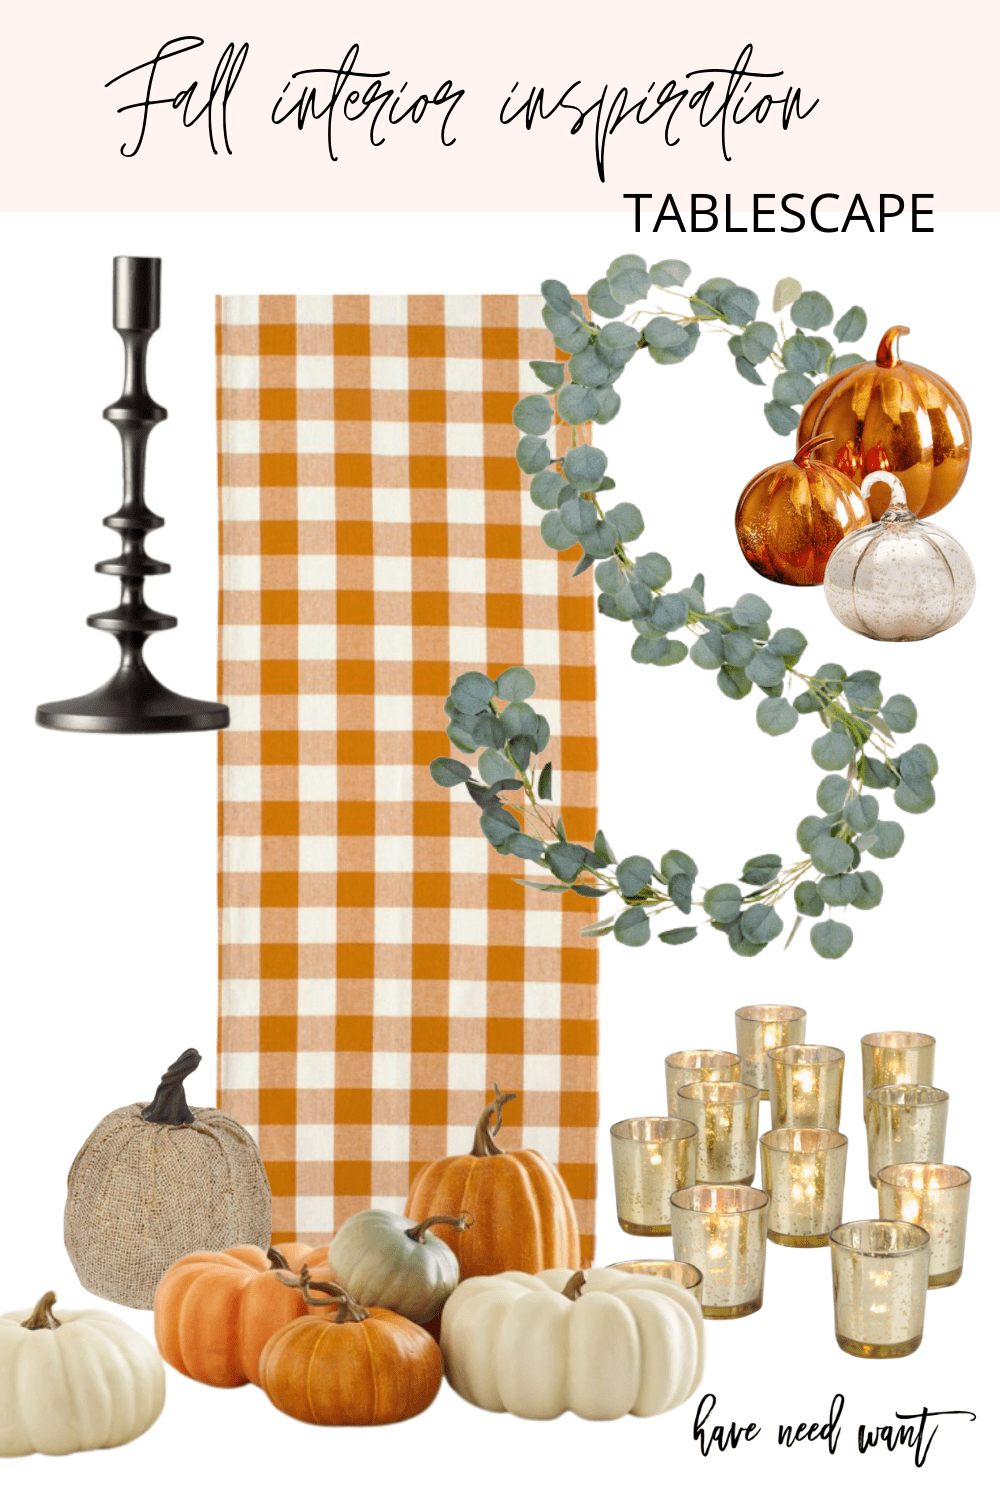 Fall interior inspiration and fall tablescape decor. These black candlestick holders are so chic and a beautiful contrast to the rest of the fall/thanksgiving tables cape decor.